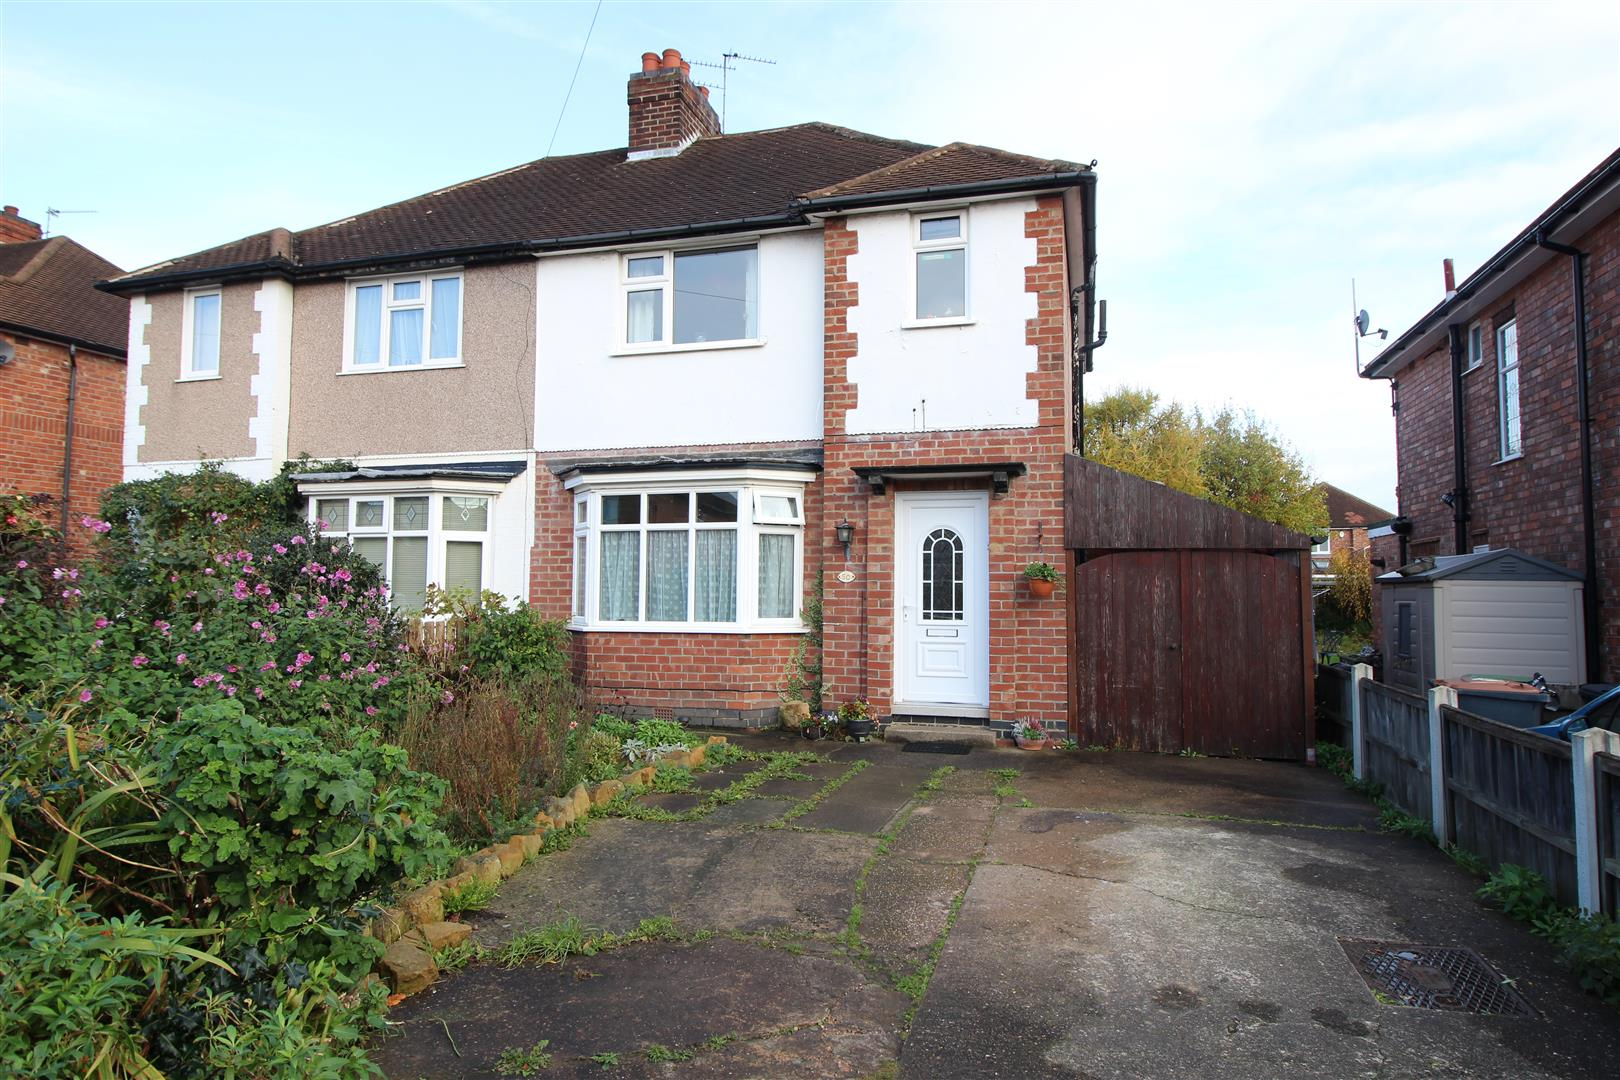 4 Bedrooms House for sale in Woodland Grove, Chilwell